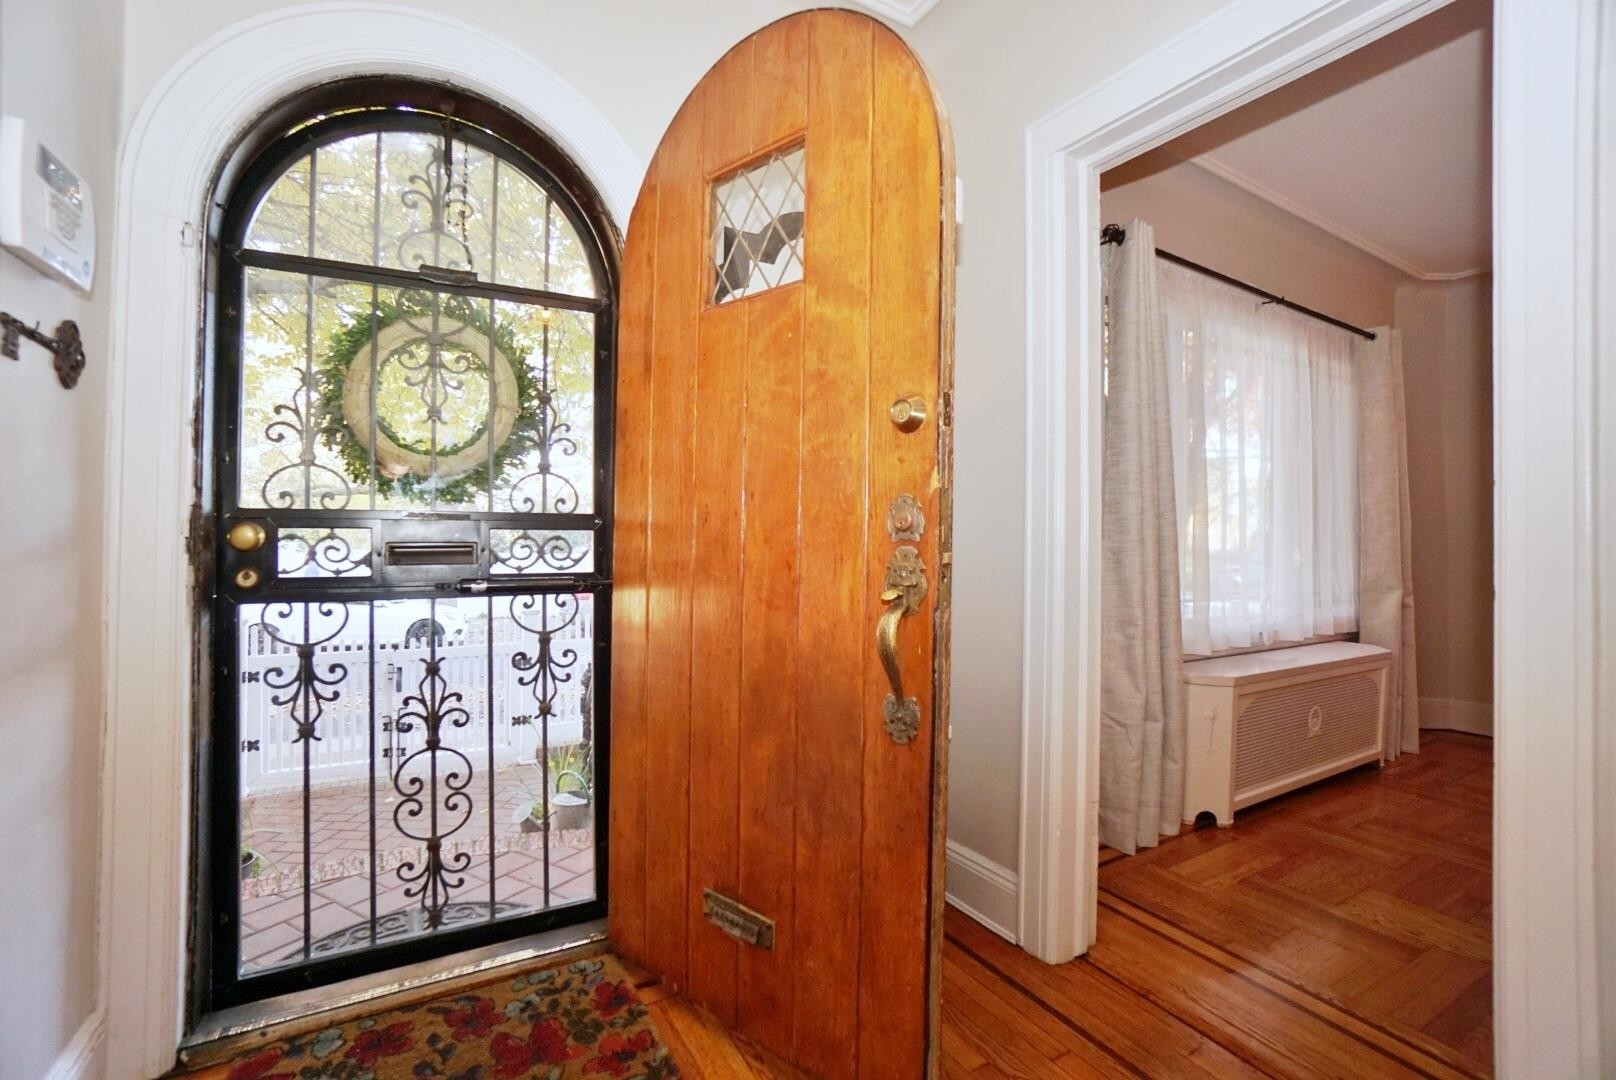 21. Single Family Townhouse for Sale at 1684 RYDER ST , TOWNHOUSE Marine Park, Brooklyn, NY 11234